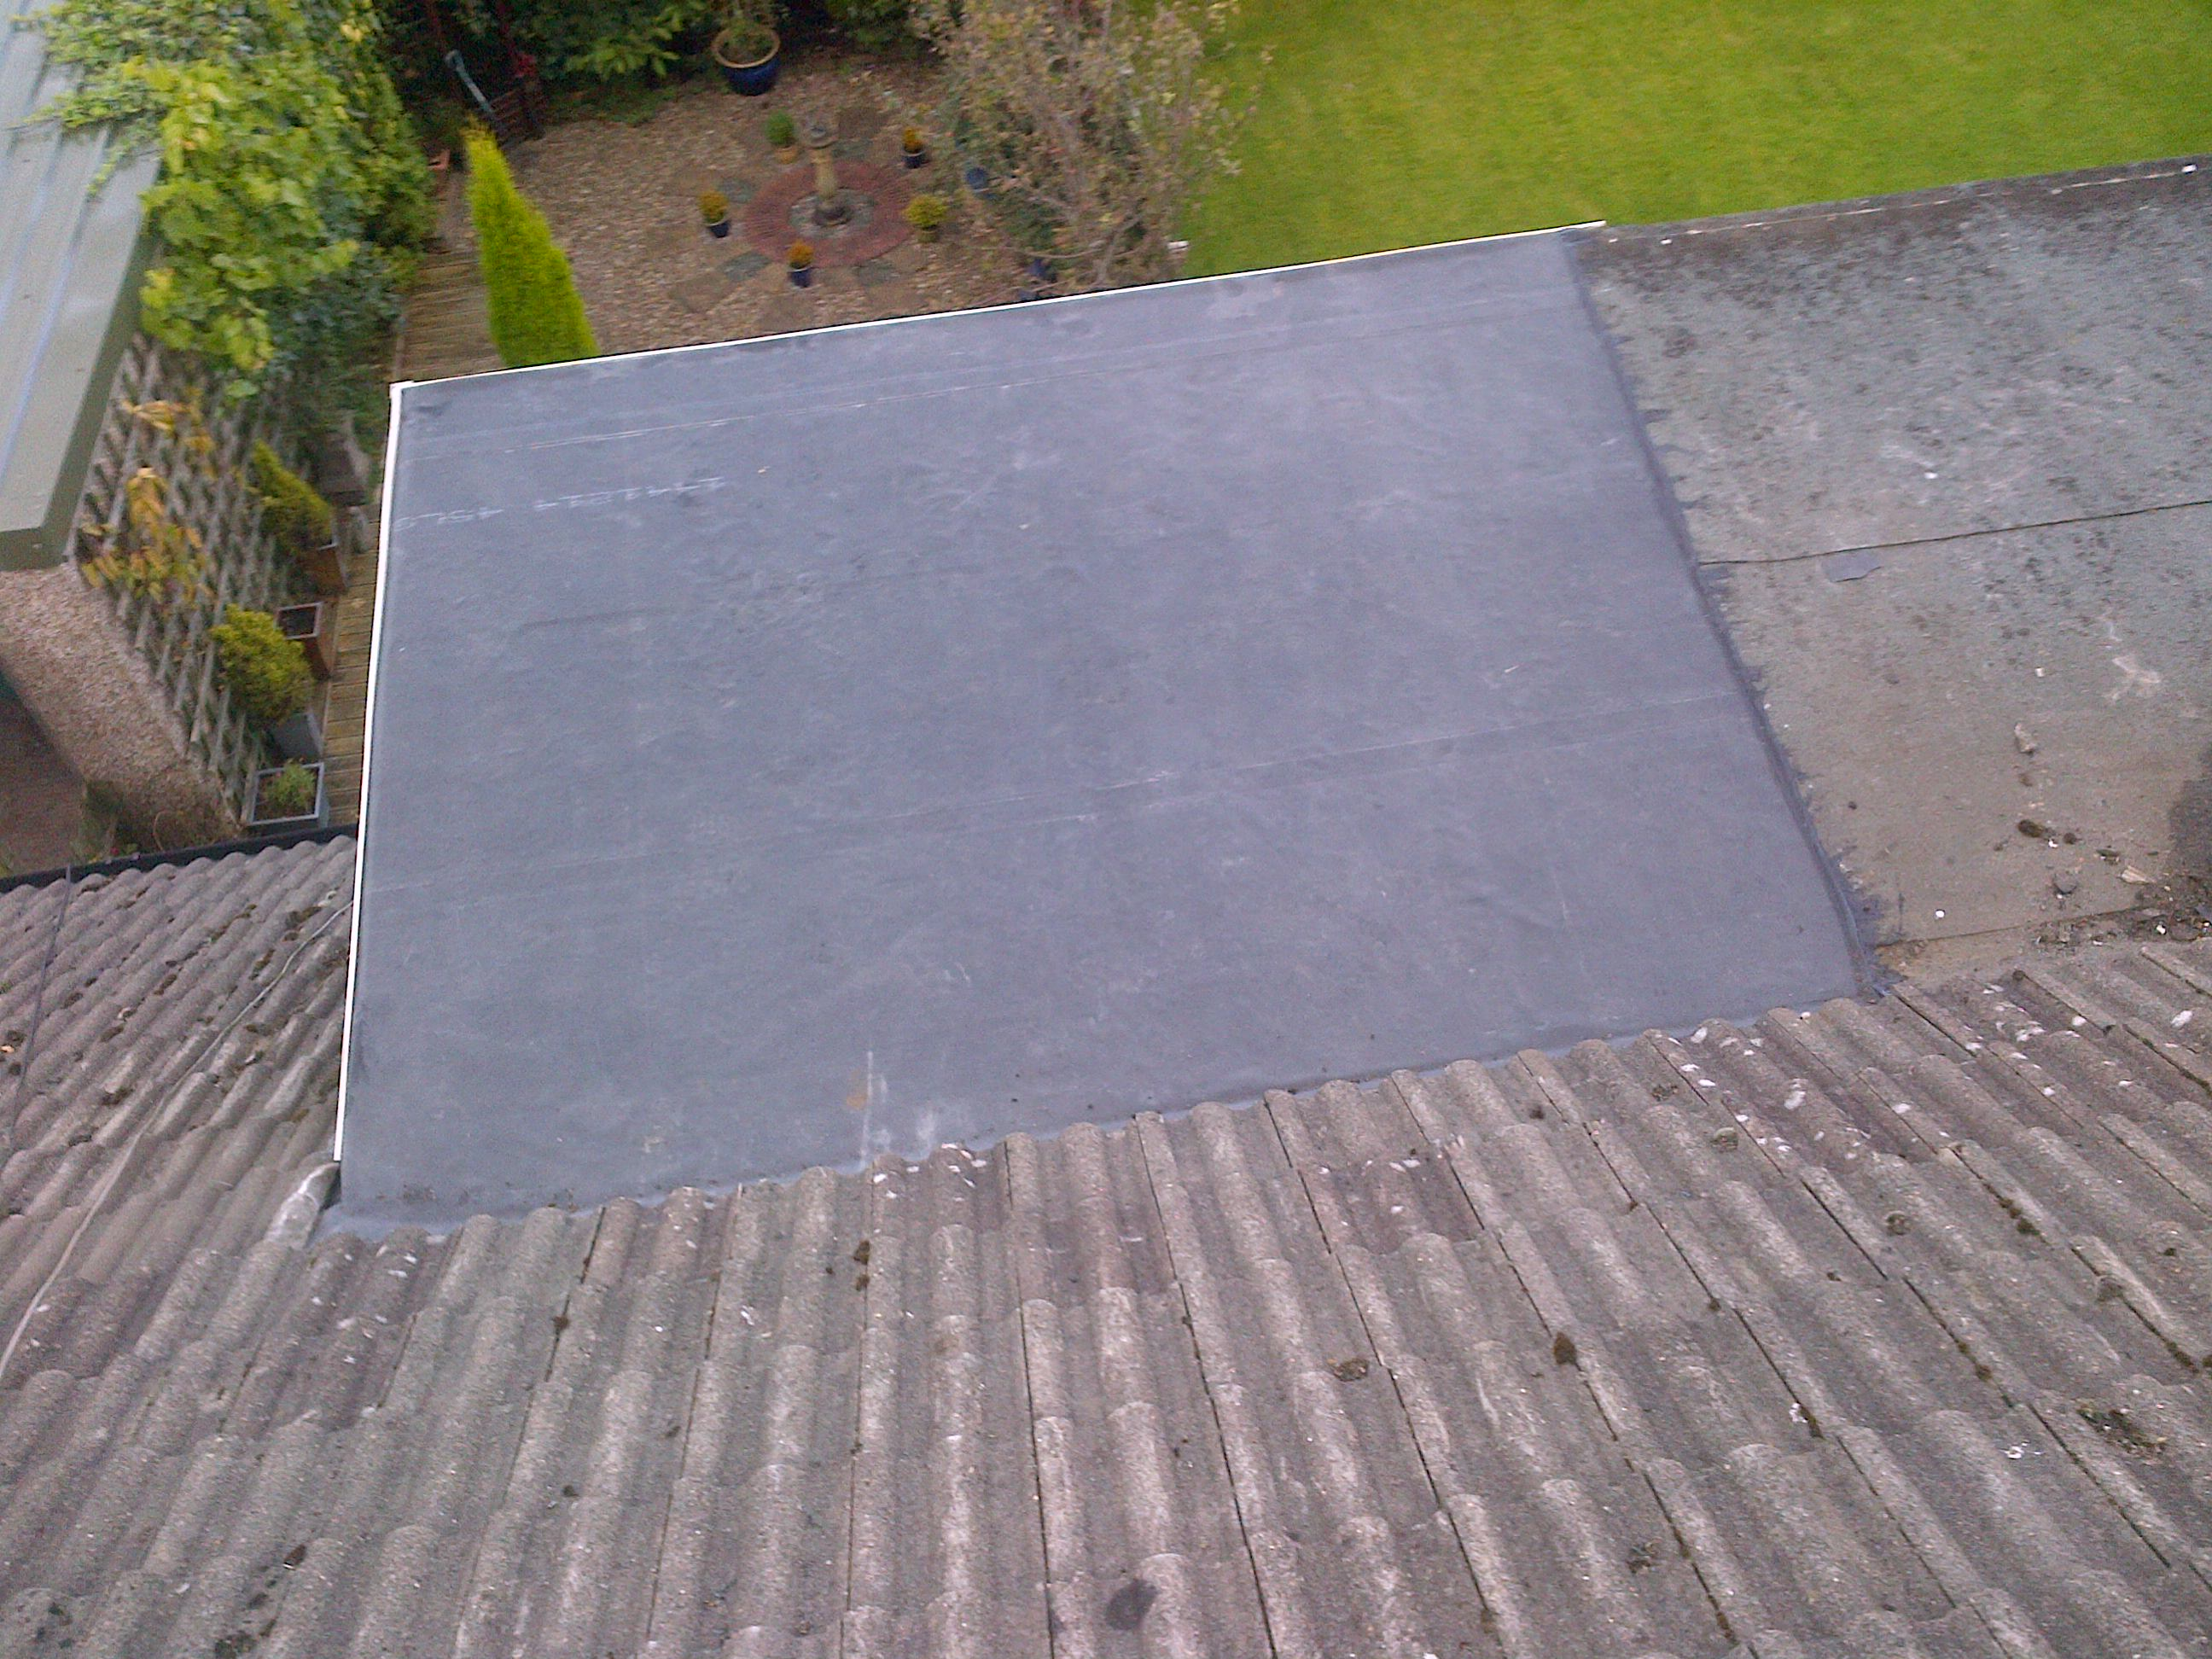 File:EPDM Rubber flat roof Halifax.jpg - Wikimedia Commons